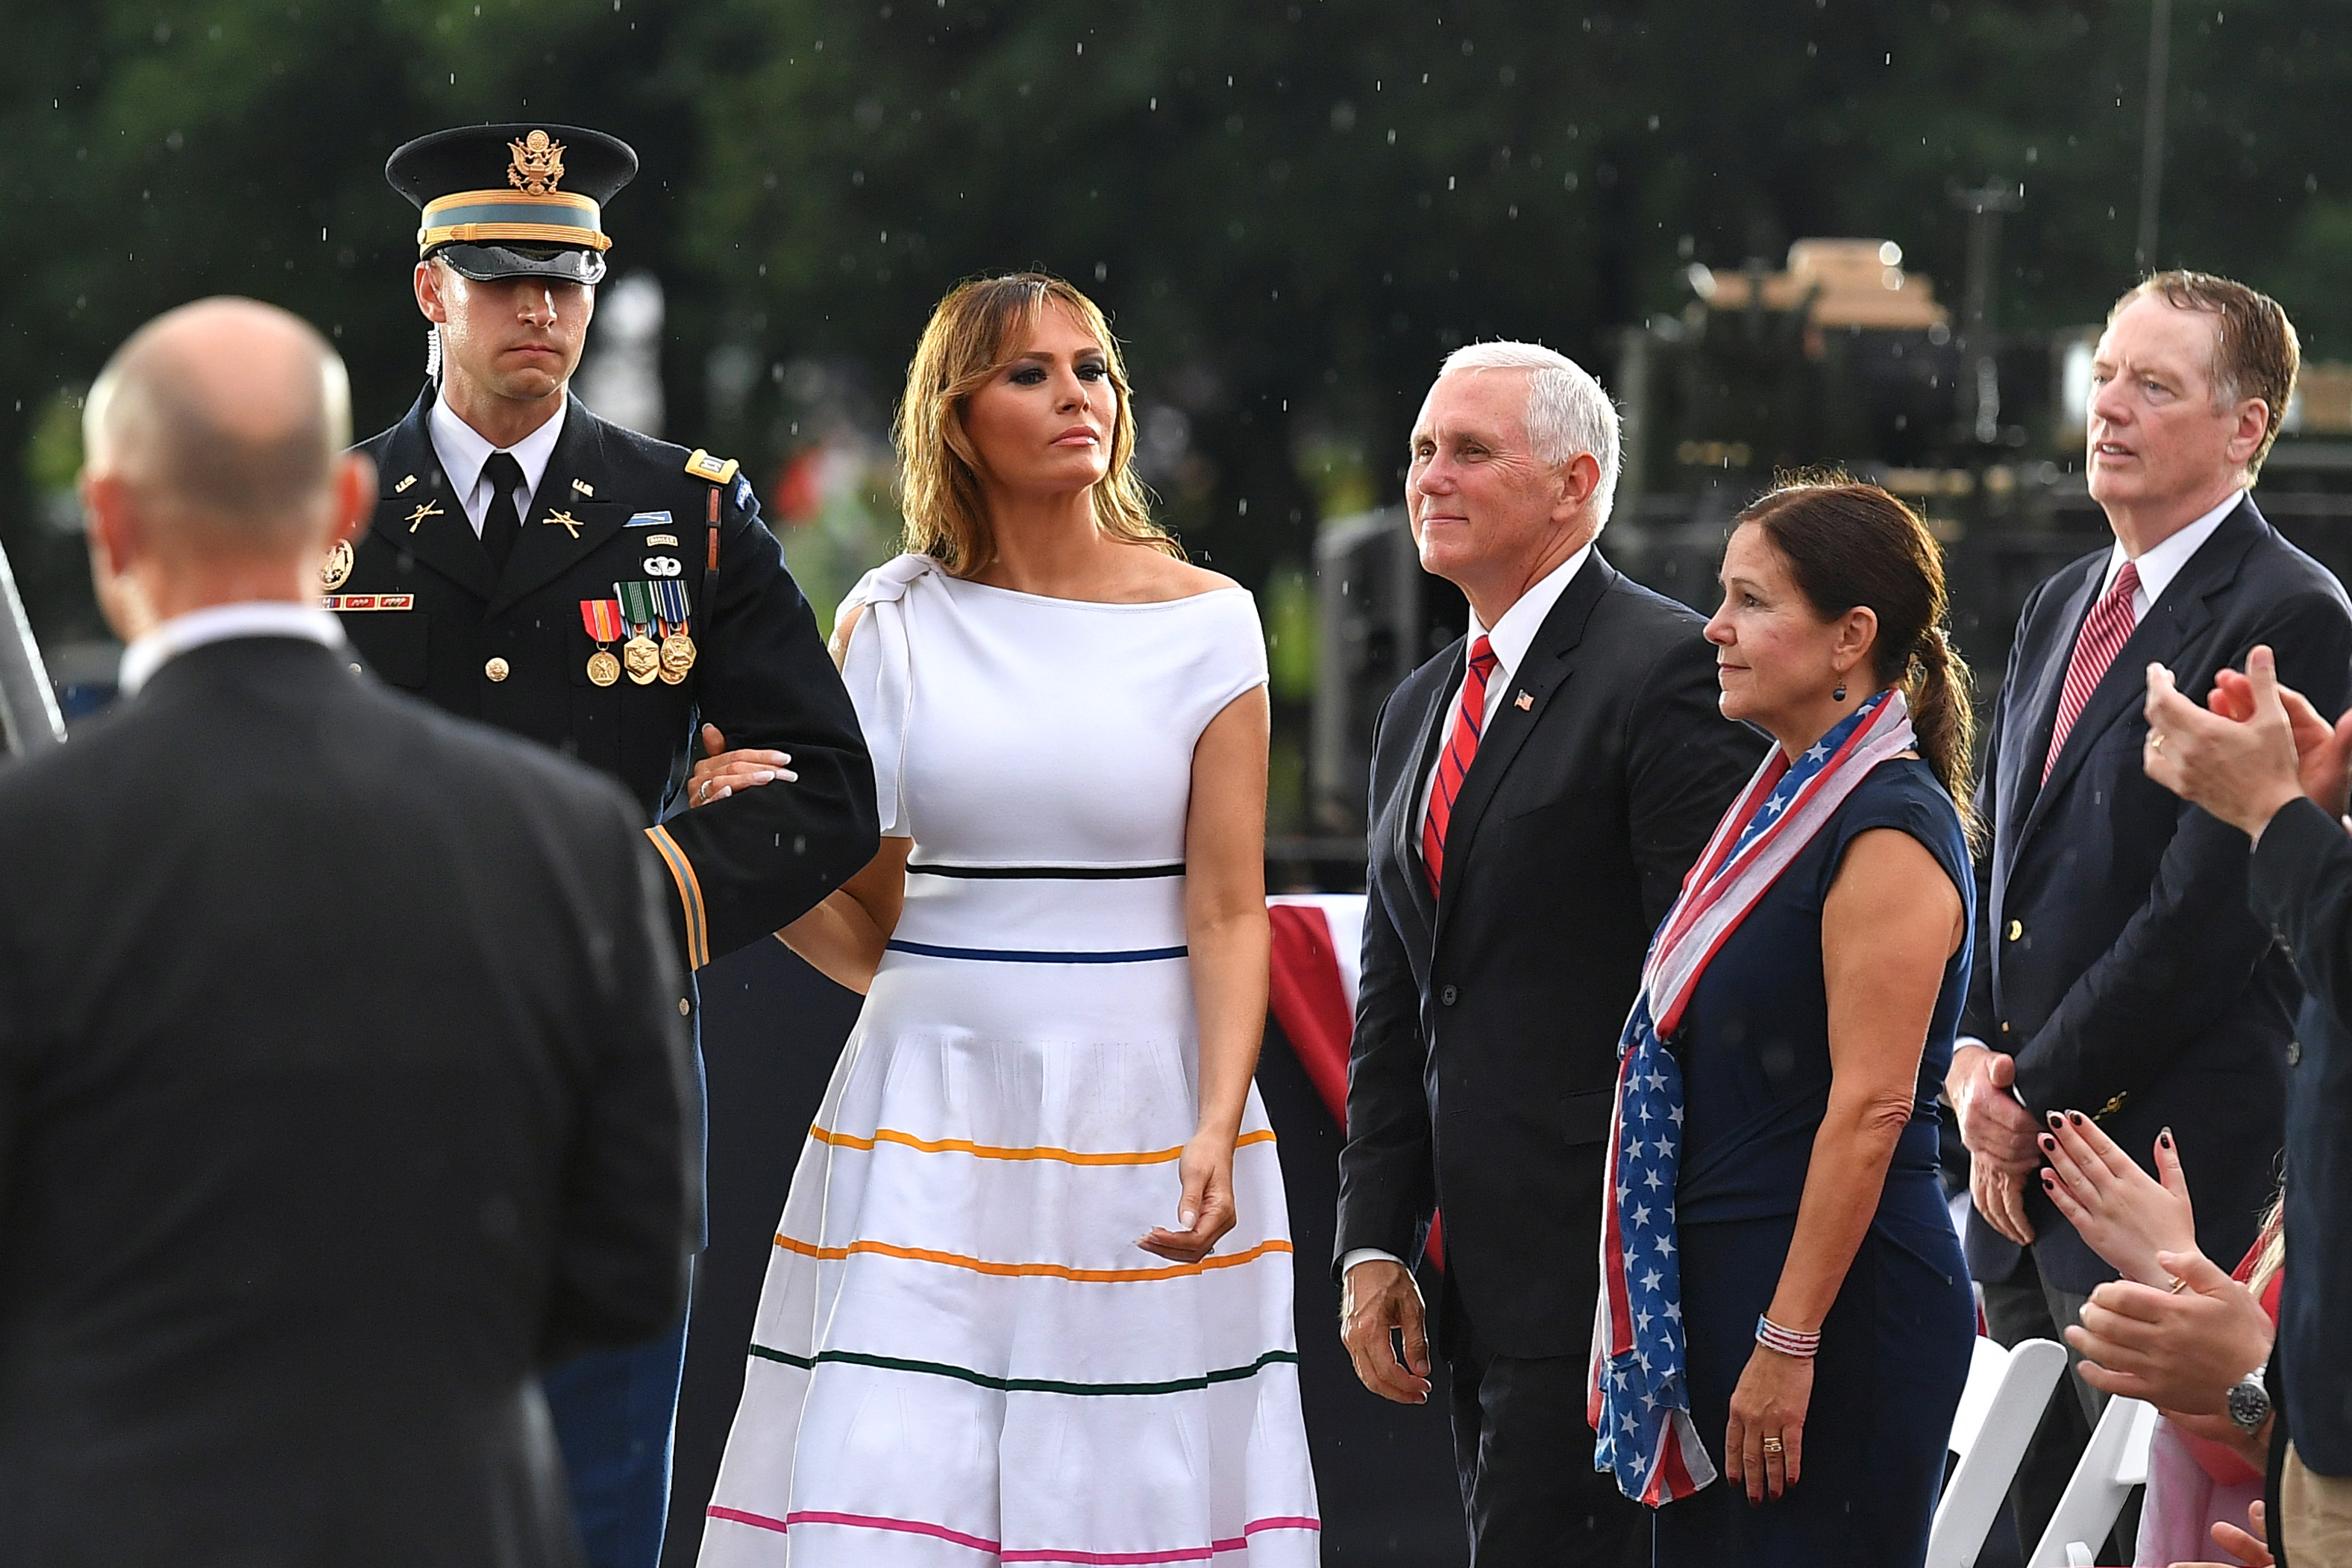 """US First Lady Melania Trump (C) is escorted to the stage during the """"Salute to America"""" Fourth of July event at the Lincoln Memorial in Washington, DC, July 4, 2019. (Photo by MANDEL NGAN / AFP)        (Photo credit should read MANDEL NGAN/AFP/Getty Images)"""